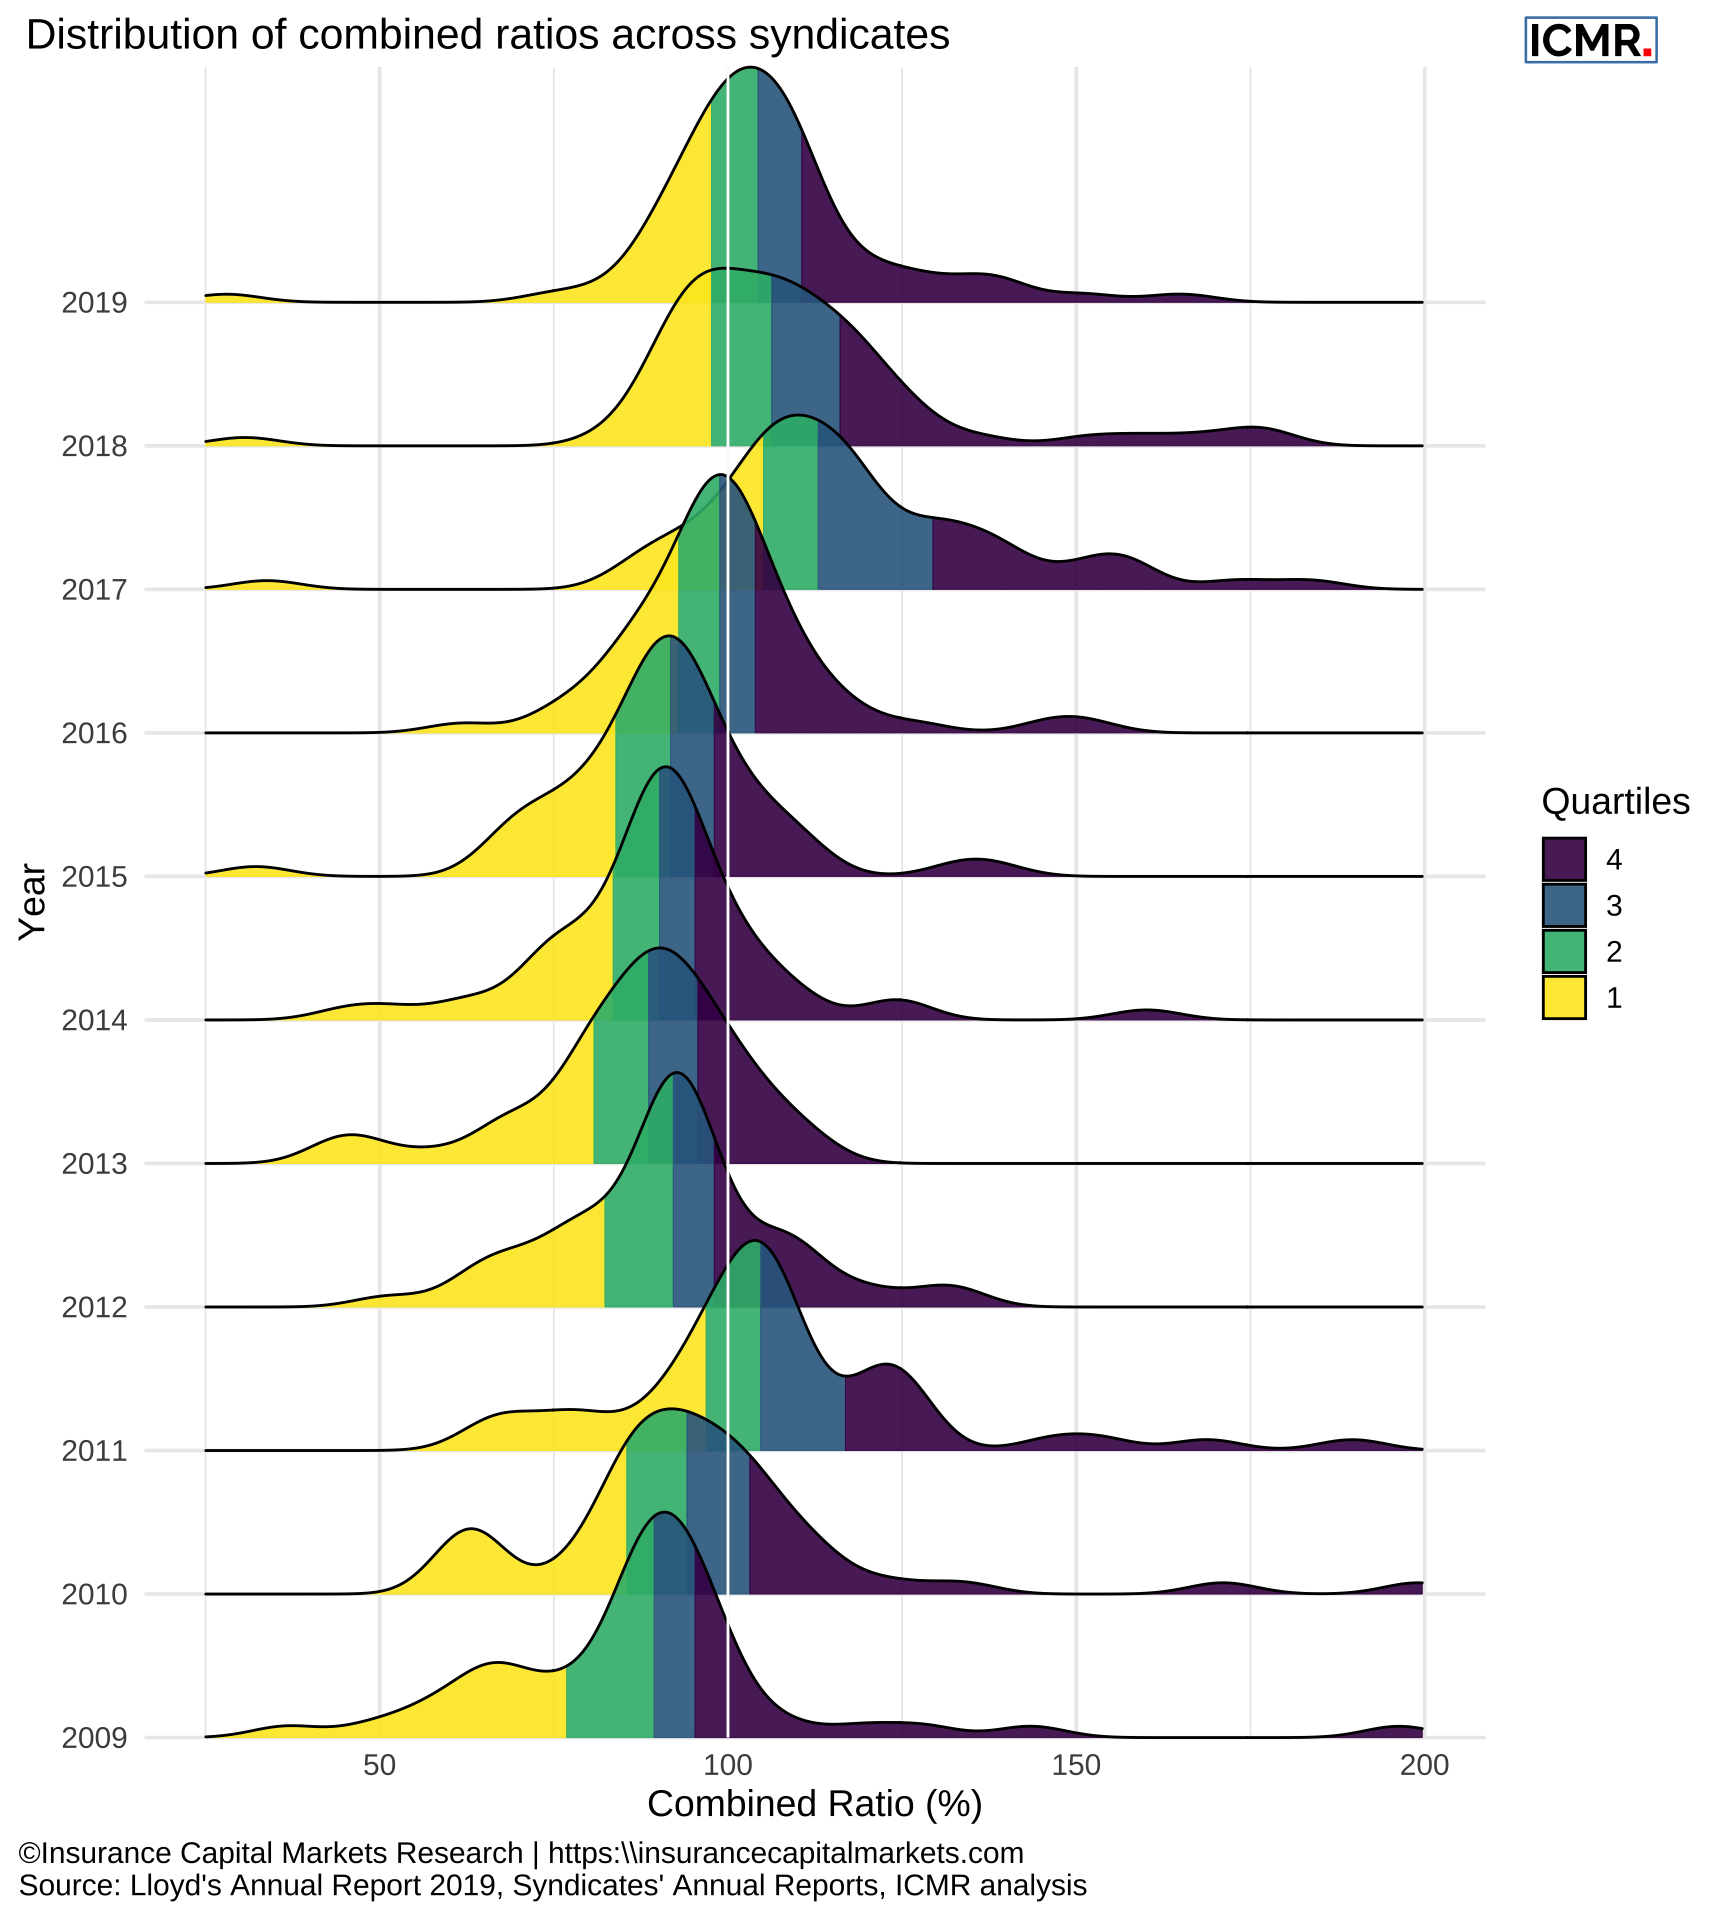 Distribution of syndicates' combined ratio from 2009 - 2019. All syndicates with a number greater than 6000 (SPAs) have been excluded, as well as the first three years of start-up syndicates and syndicates that wrote less than £20m in each year. SPAs have been excluded since they are reinsurance arrangements of the host syndicate and as such don't make underwriting decisions, the other syndicates have been excluded as their performance can be very volatile for the lack of premium volume.